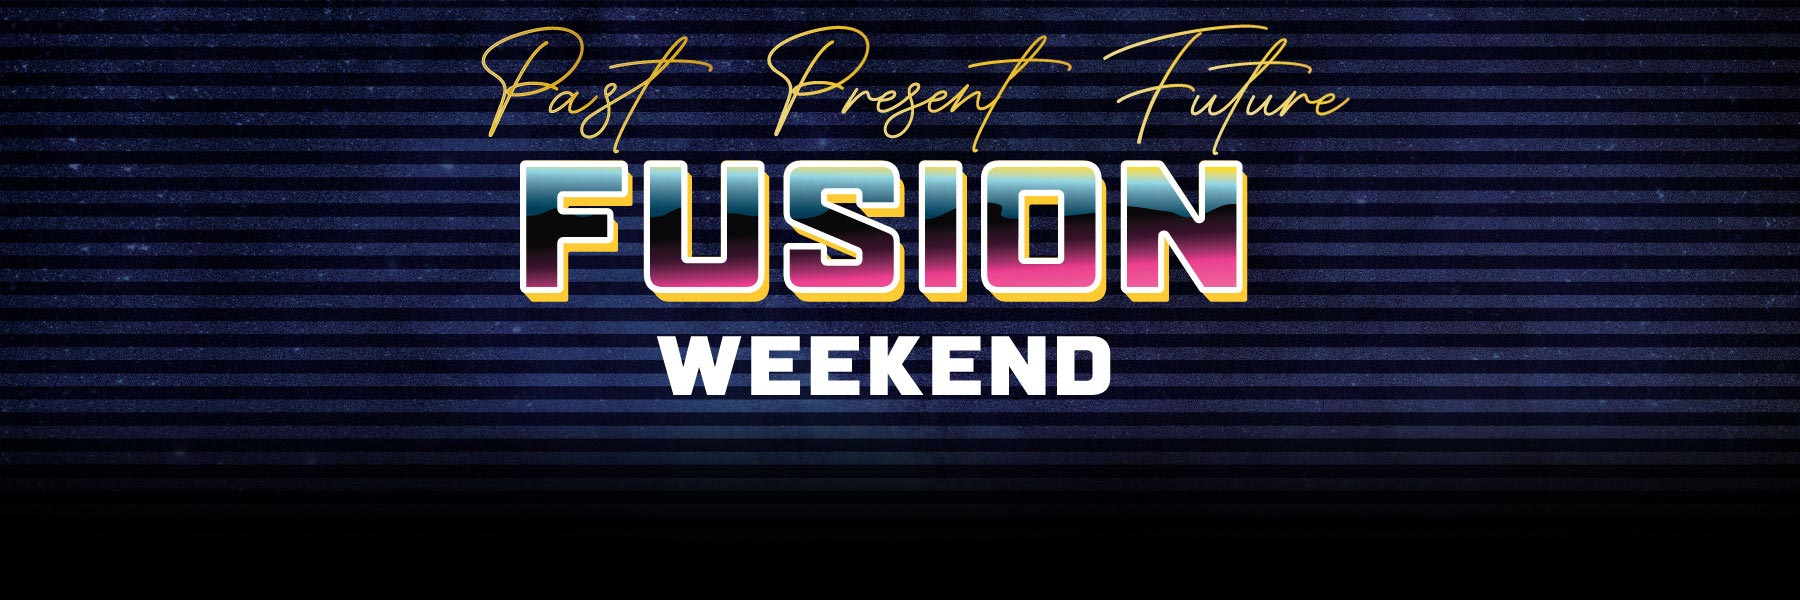 Fusion Weekend